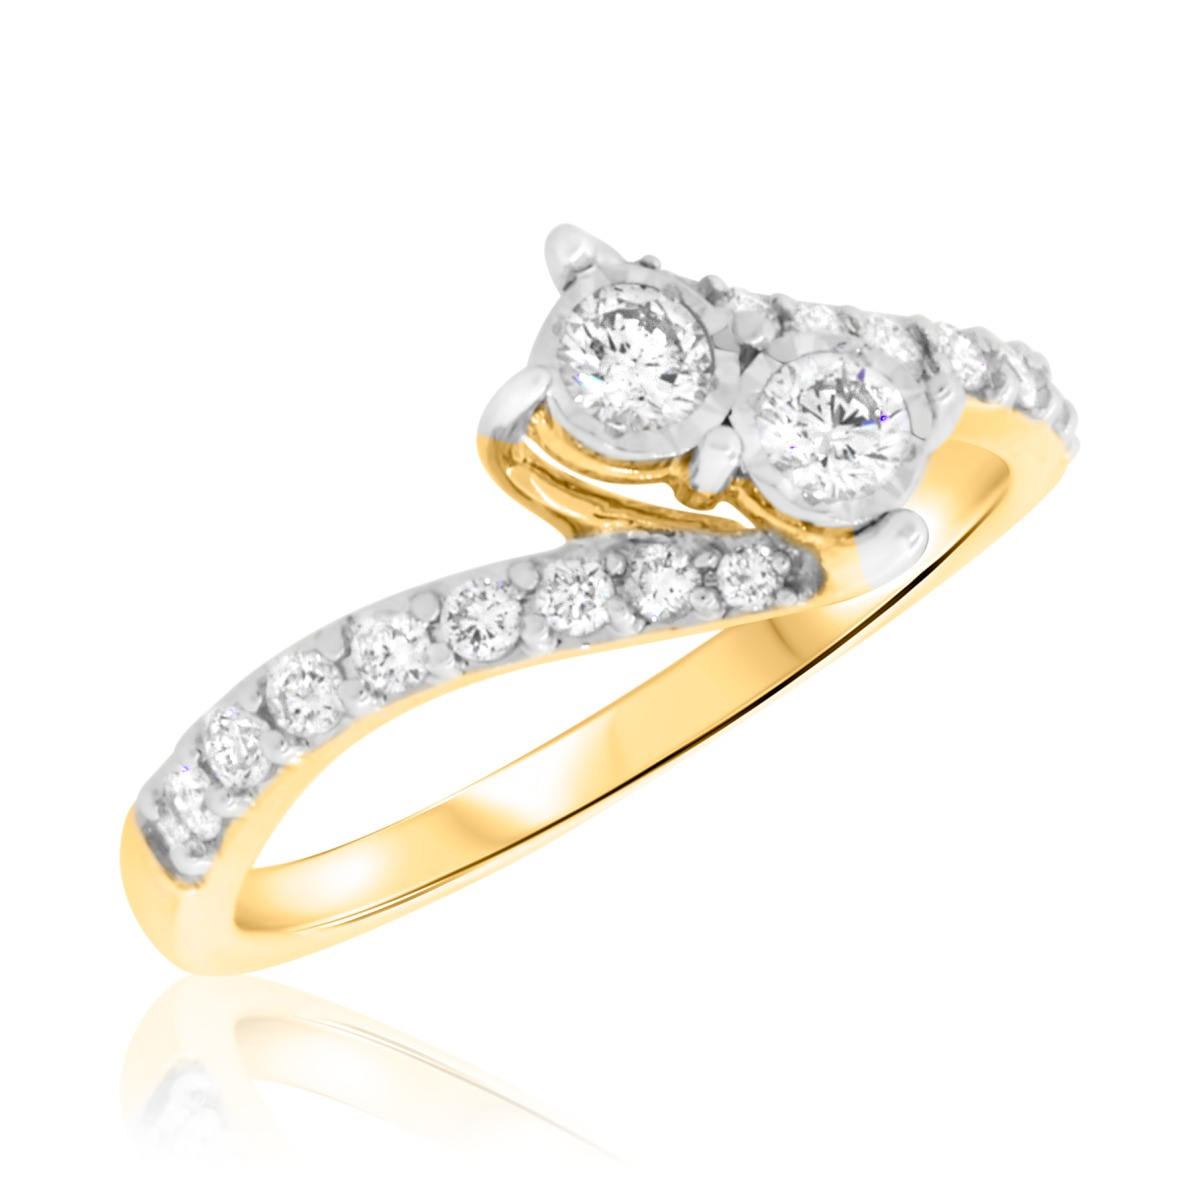 1/3 Carat T.W. Round Cut Diamond Two Stone Ring 14K Yellow Gold